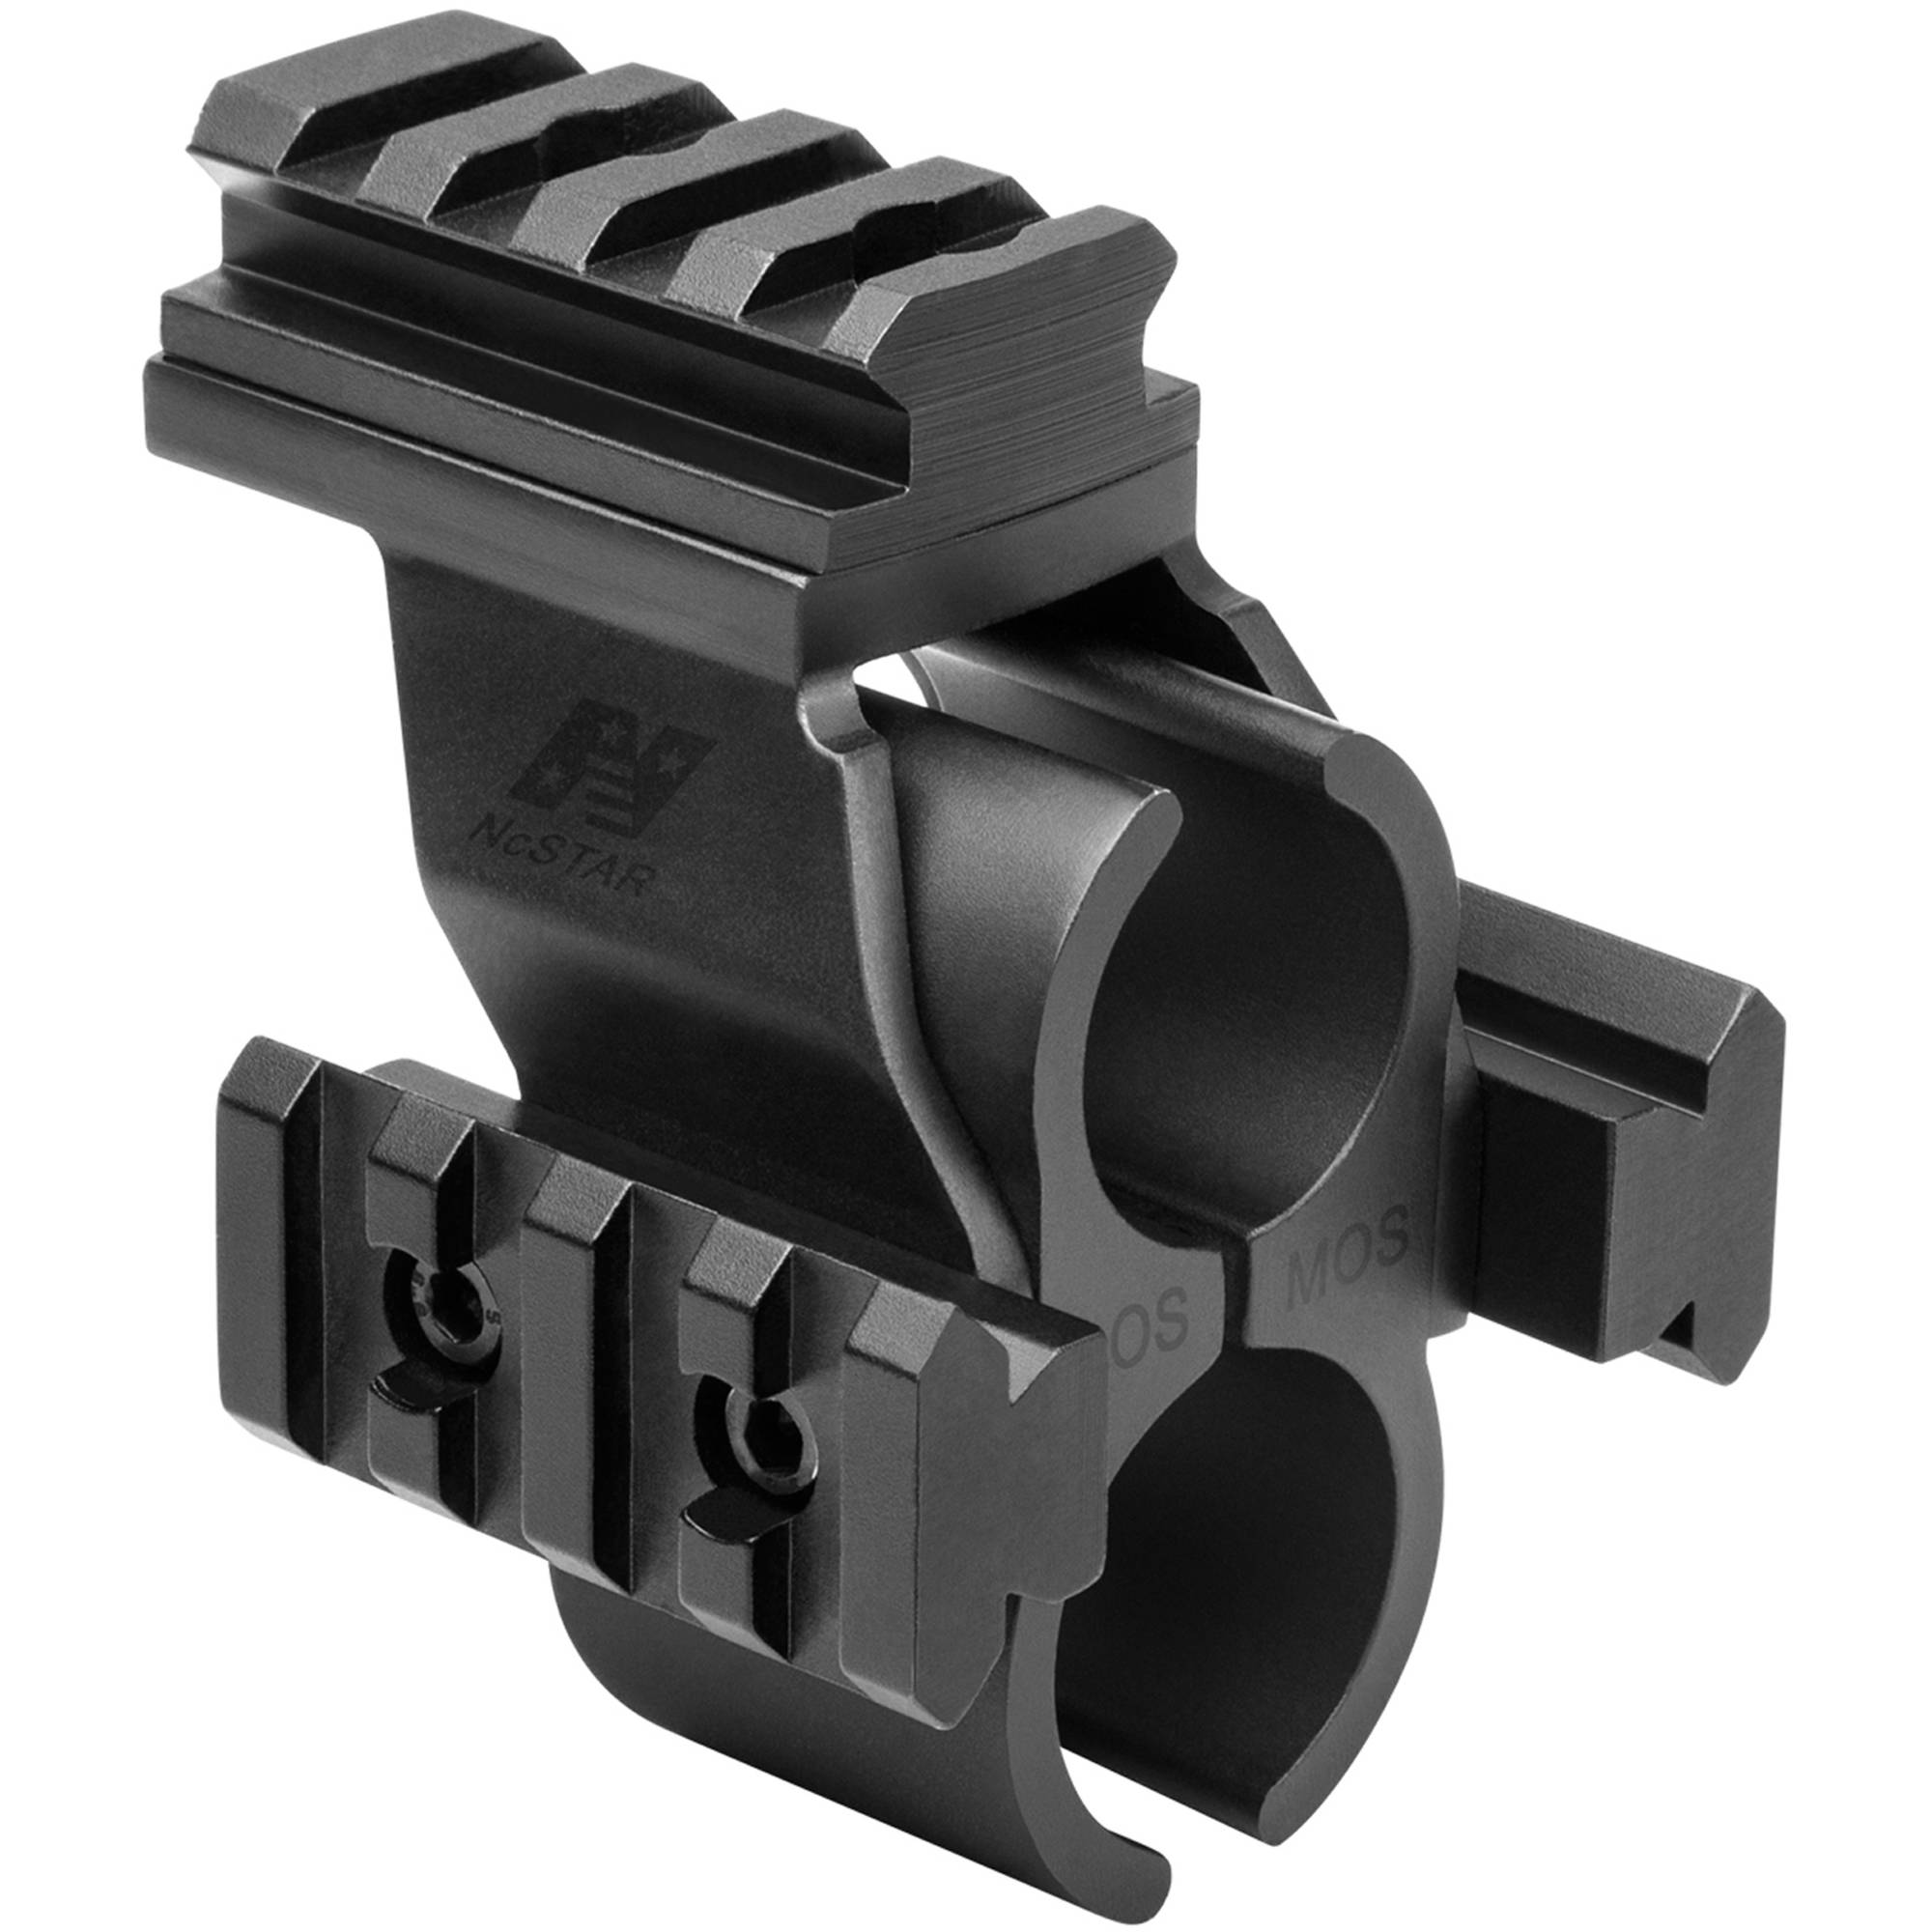 NcSTAR Shotgun Barrel MD/Rail Mount, Moss 500/590